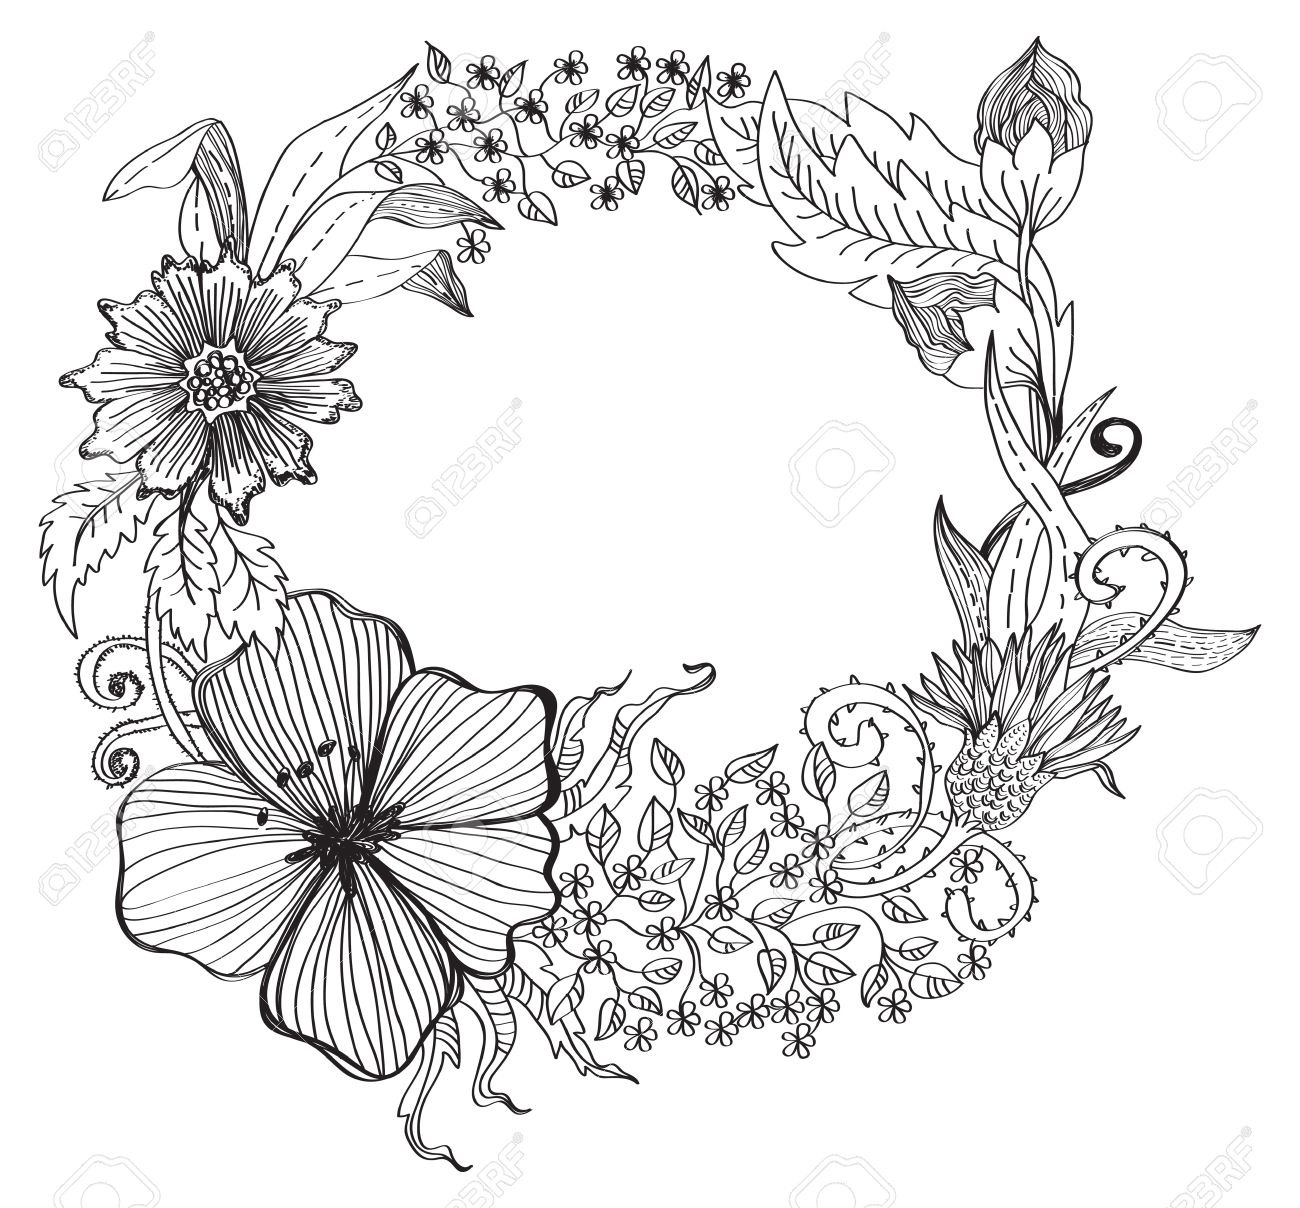 Romantic flower background for design, hand,drawing illustration